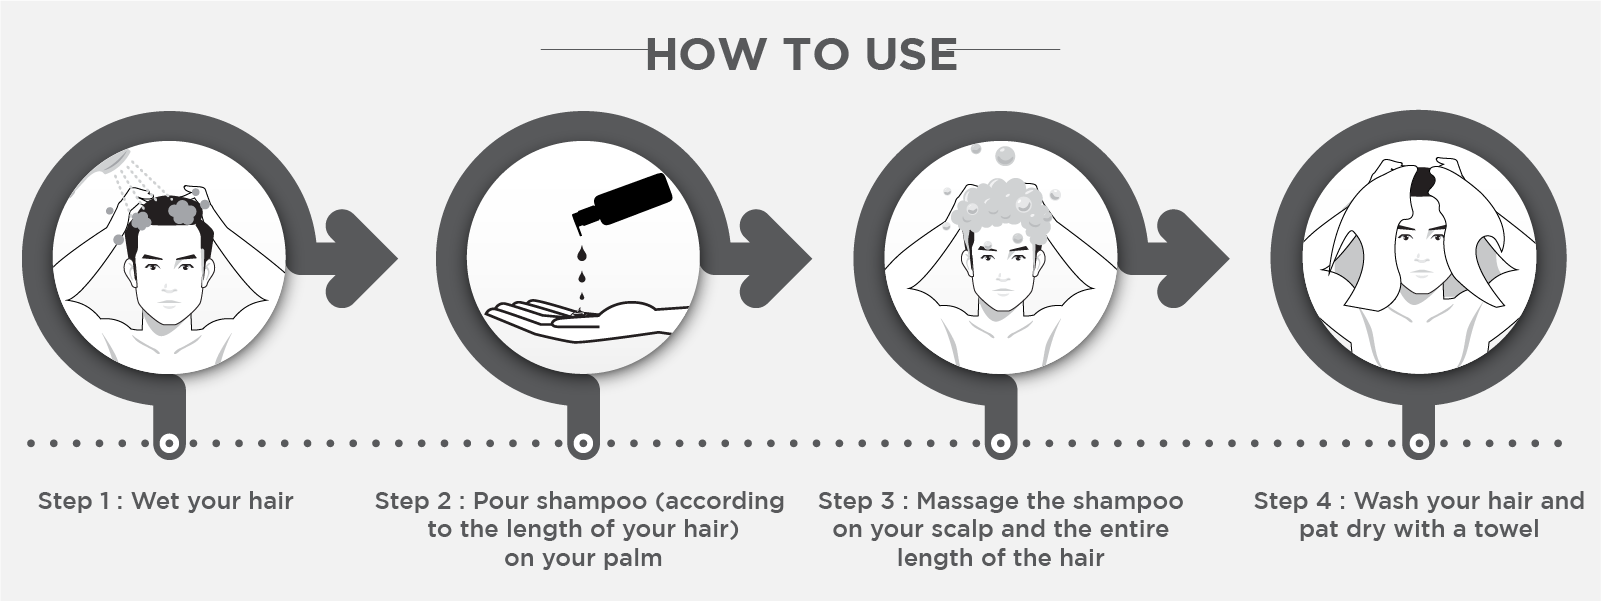 How to use anti dandruff shampoo